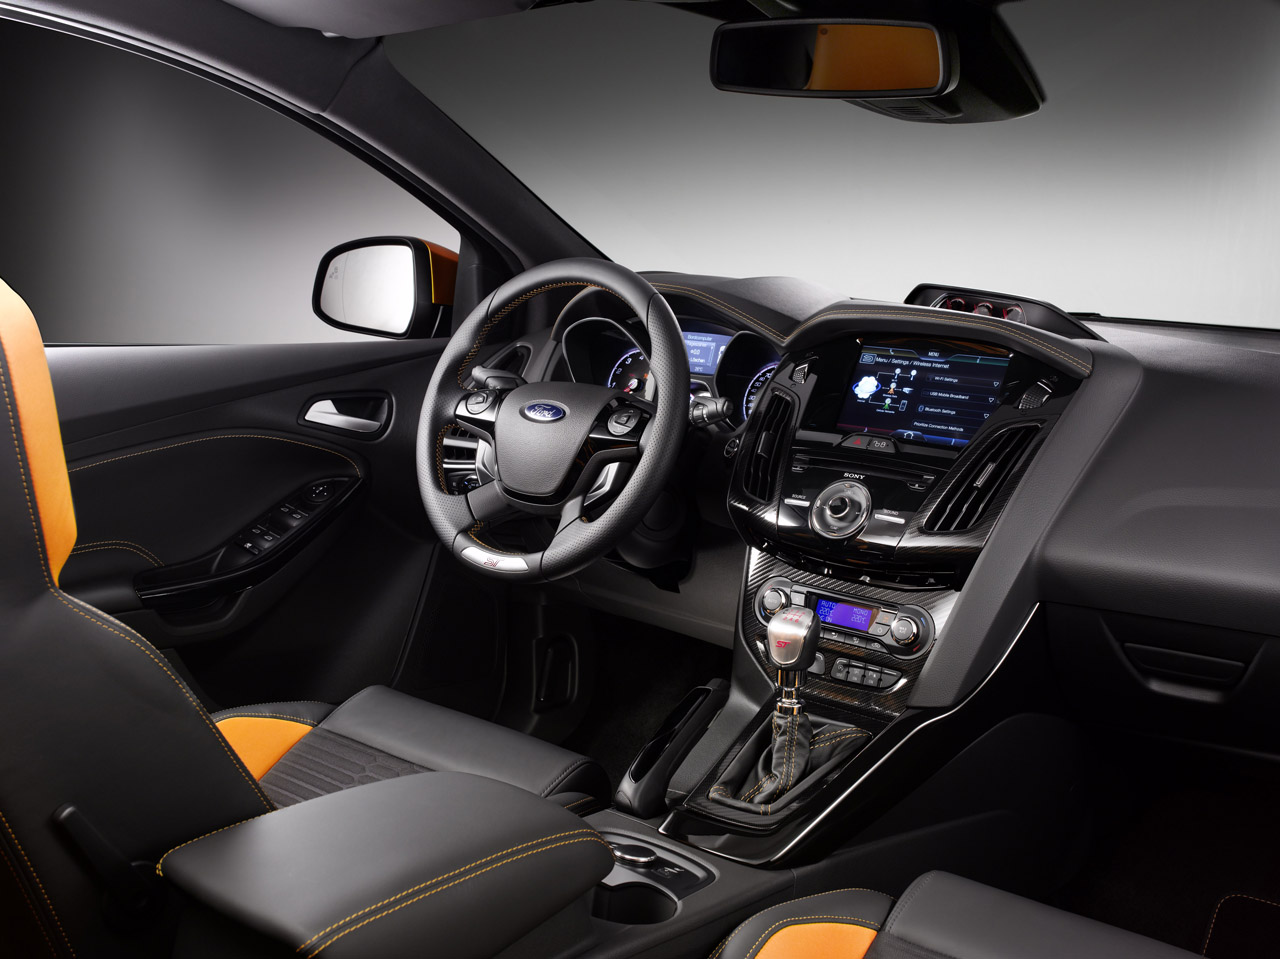 hybrid cars gallery 2012 ford focus st pictures rh hybrid carsgallery blogspot com manual ford focus 2010 portugues manual ford focus 2010 español